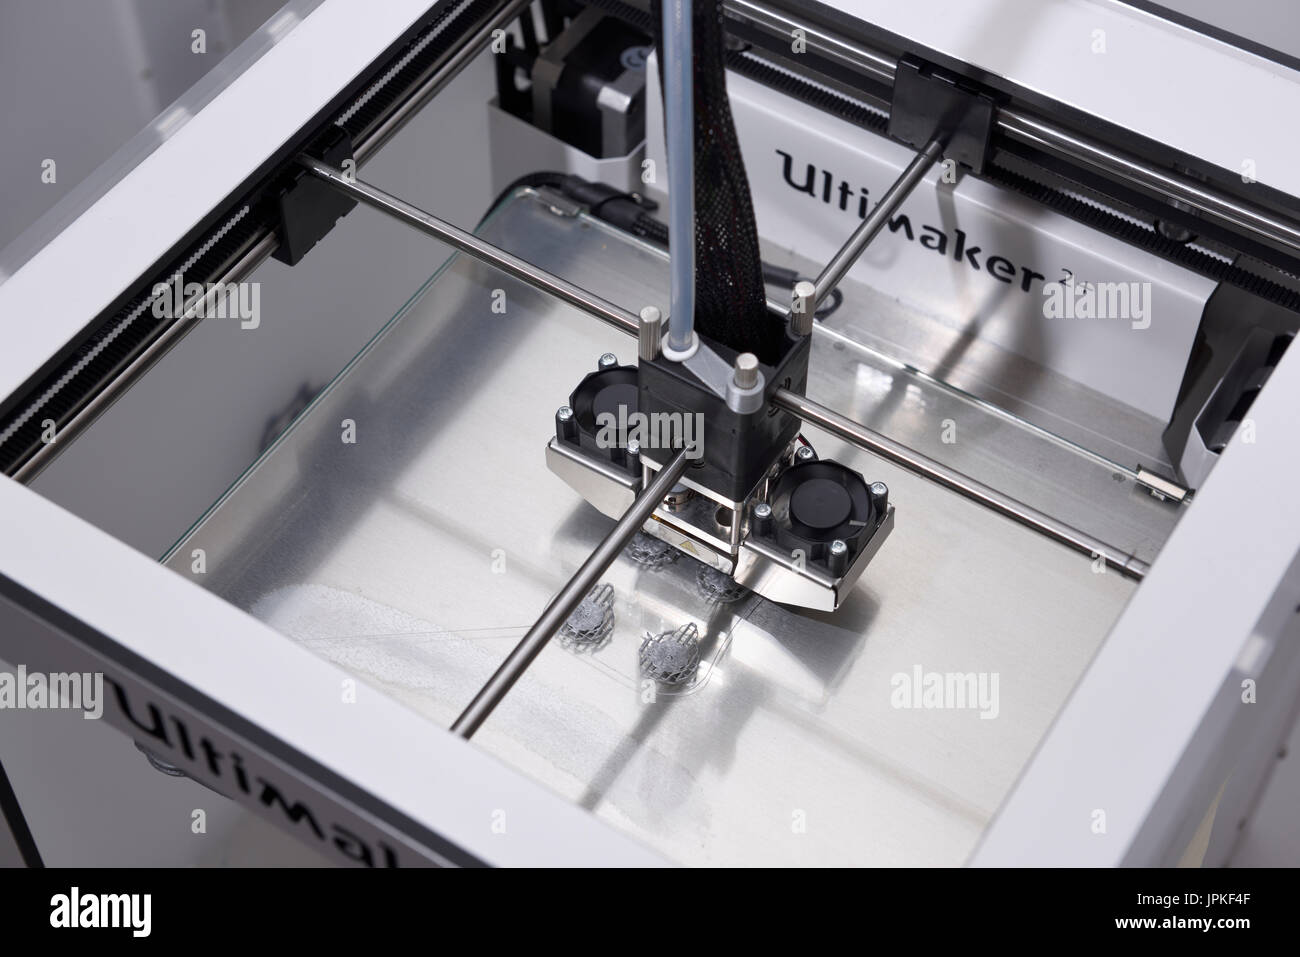 Top of a 3D three dimensional printer extruding Polylactic acid PLA polymer to print plastic objects showing the extrusion nozzle head - Stock Image